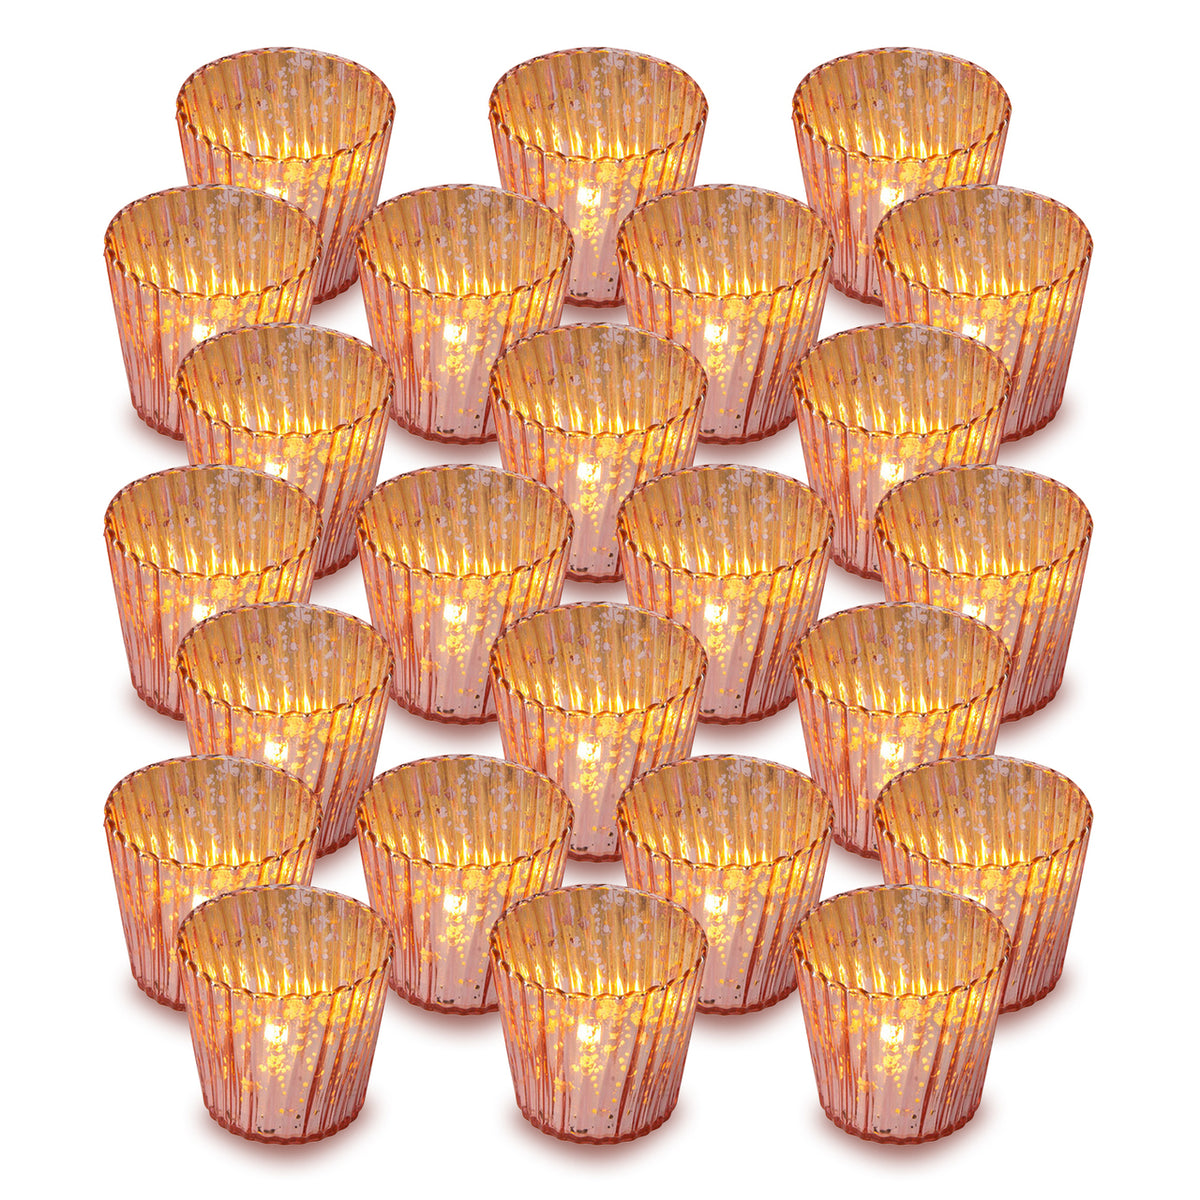 24 Pack | Vintage Mercury Glass Candle Holders (3-Inch, Caroline Design, Vertical Motif, Rose Gold Pink) - For use with Tea Lights - Home Decor, Parties and Wedding Decorations - PaperLanternStore.com - Paper Lanterns, Decor, Party Lights & More